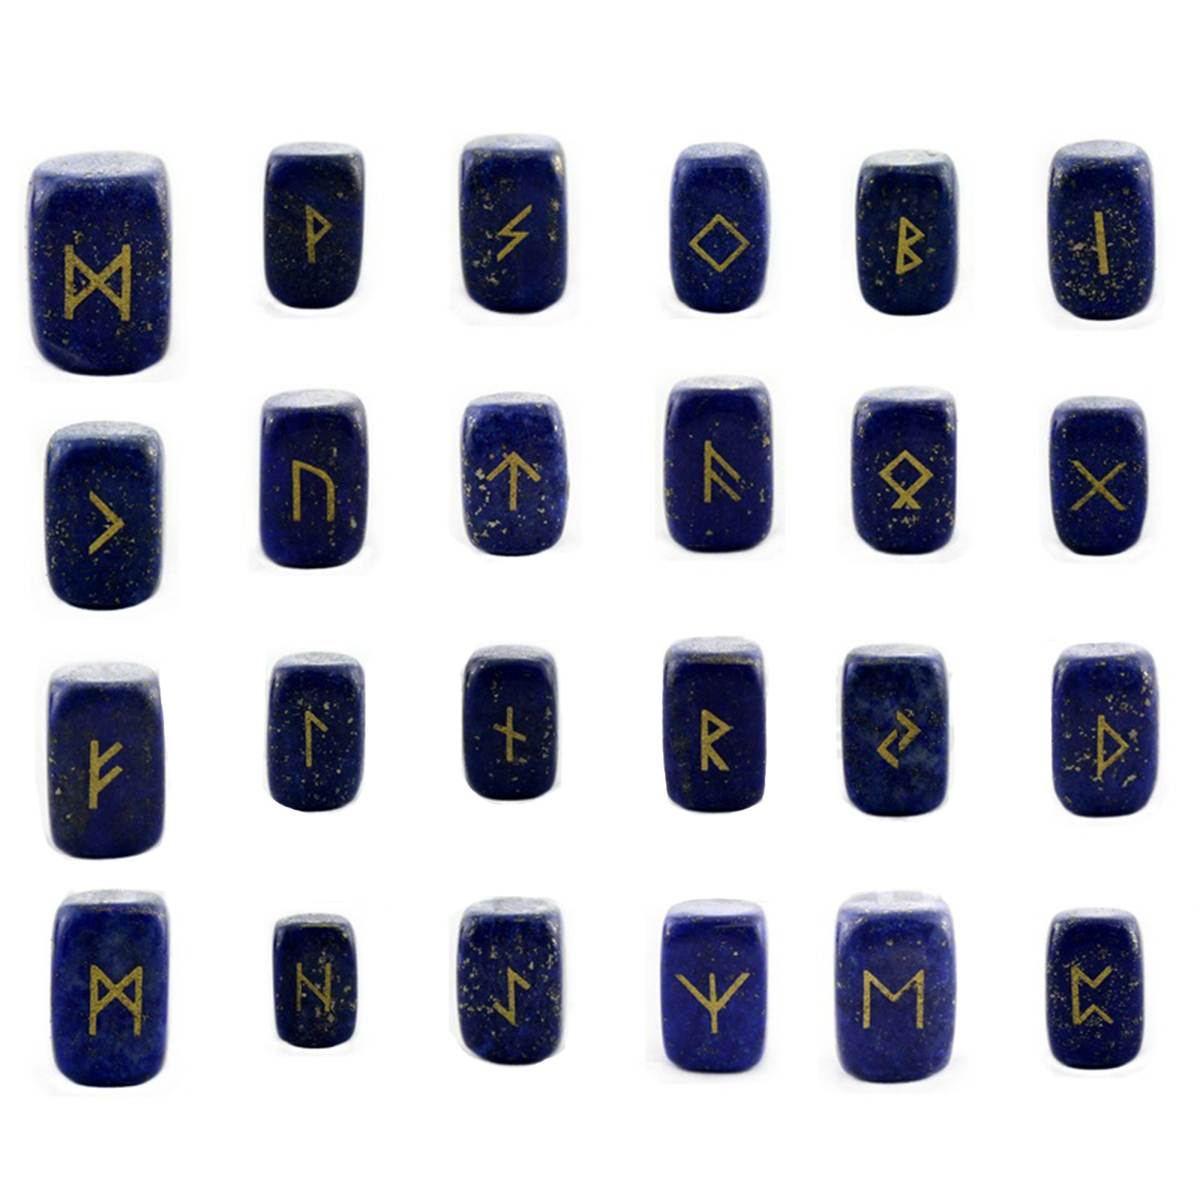 Engraved Rune Stone Set - Elder Futhark (Various sets)